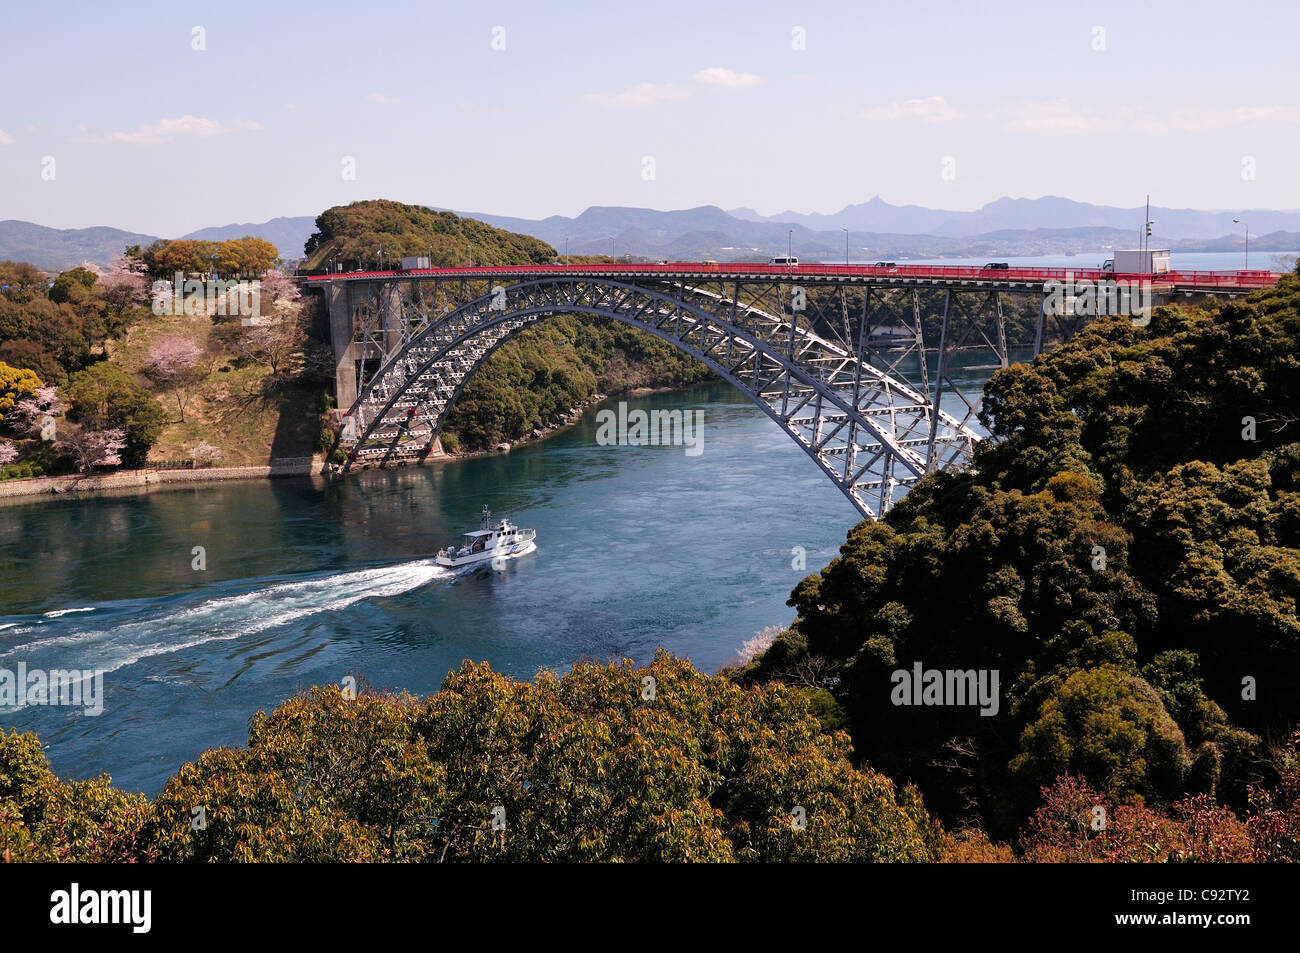 There are two Saikai bridges in the Saikai national park which span the sea channel between islands in the Kyushu - Stock Image